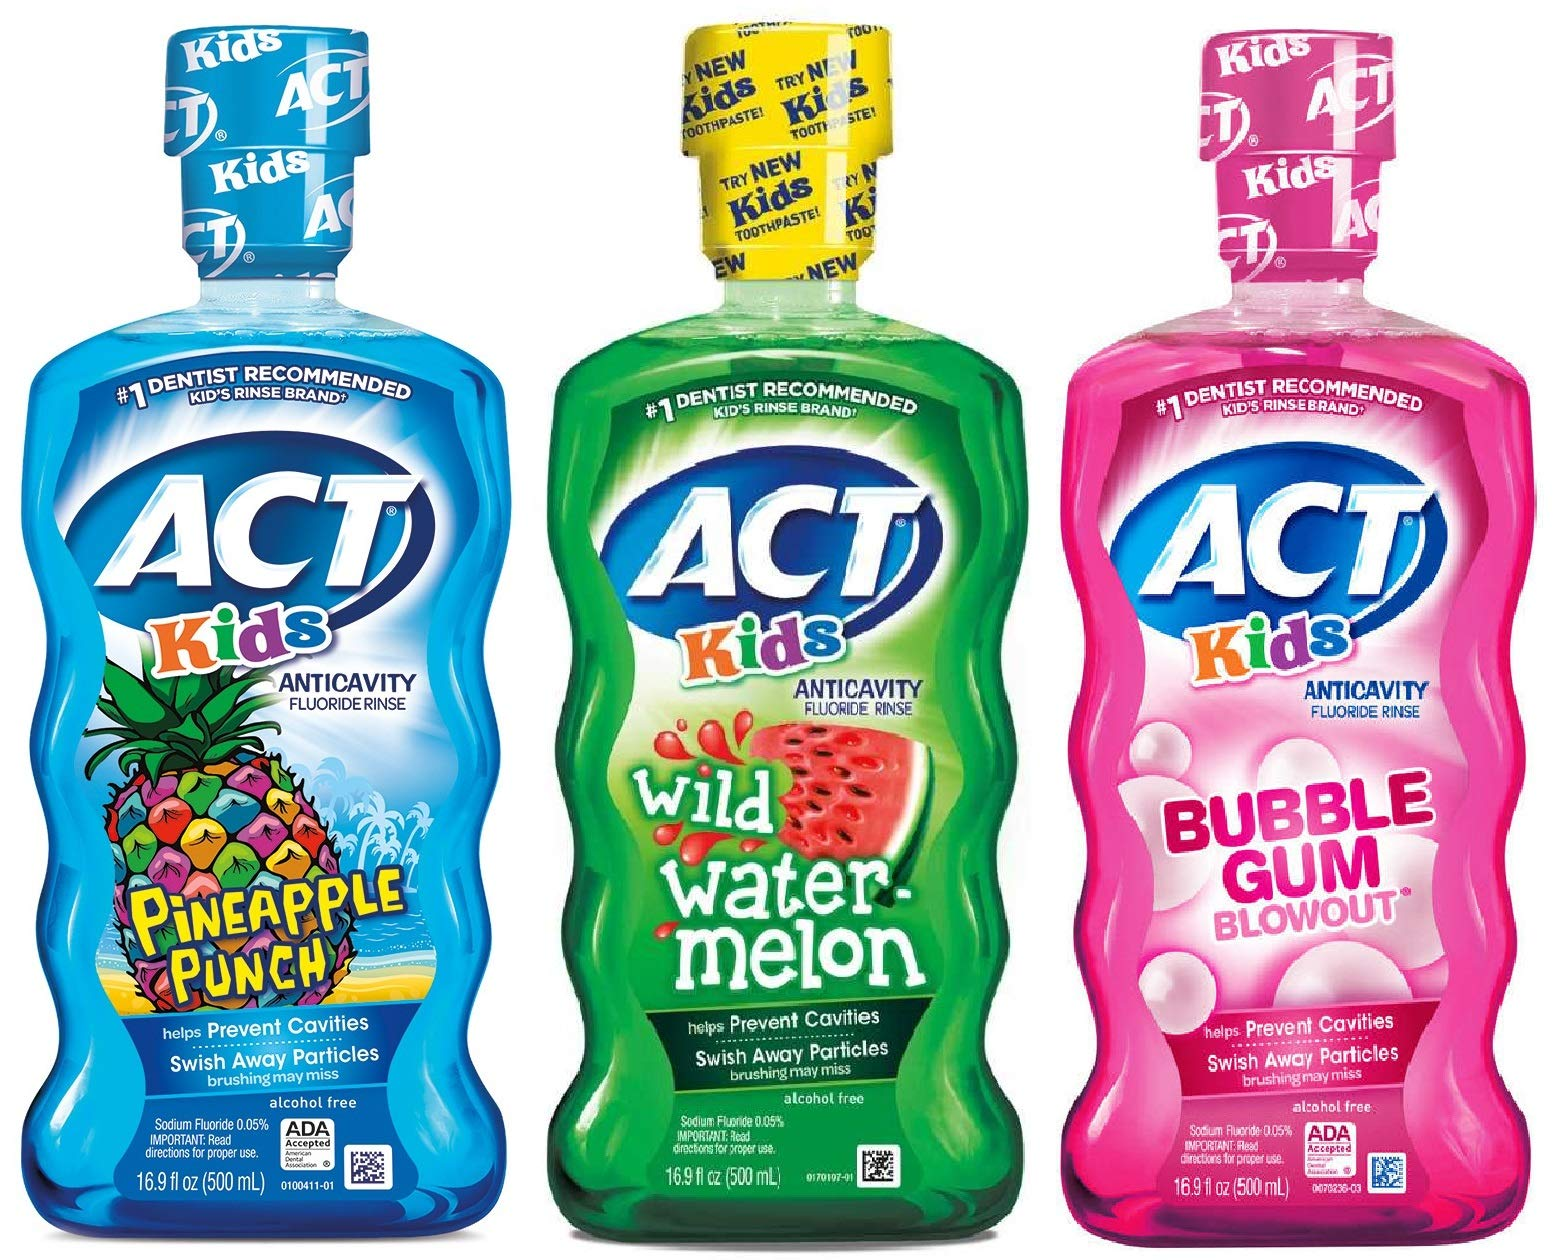 ACT Kids Mouthwash Variety Pack (Original Version) by ACT